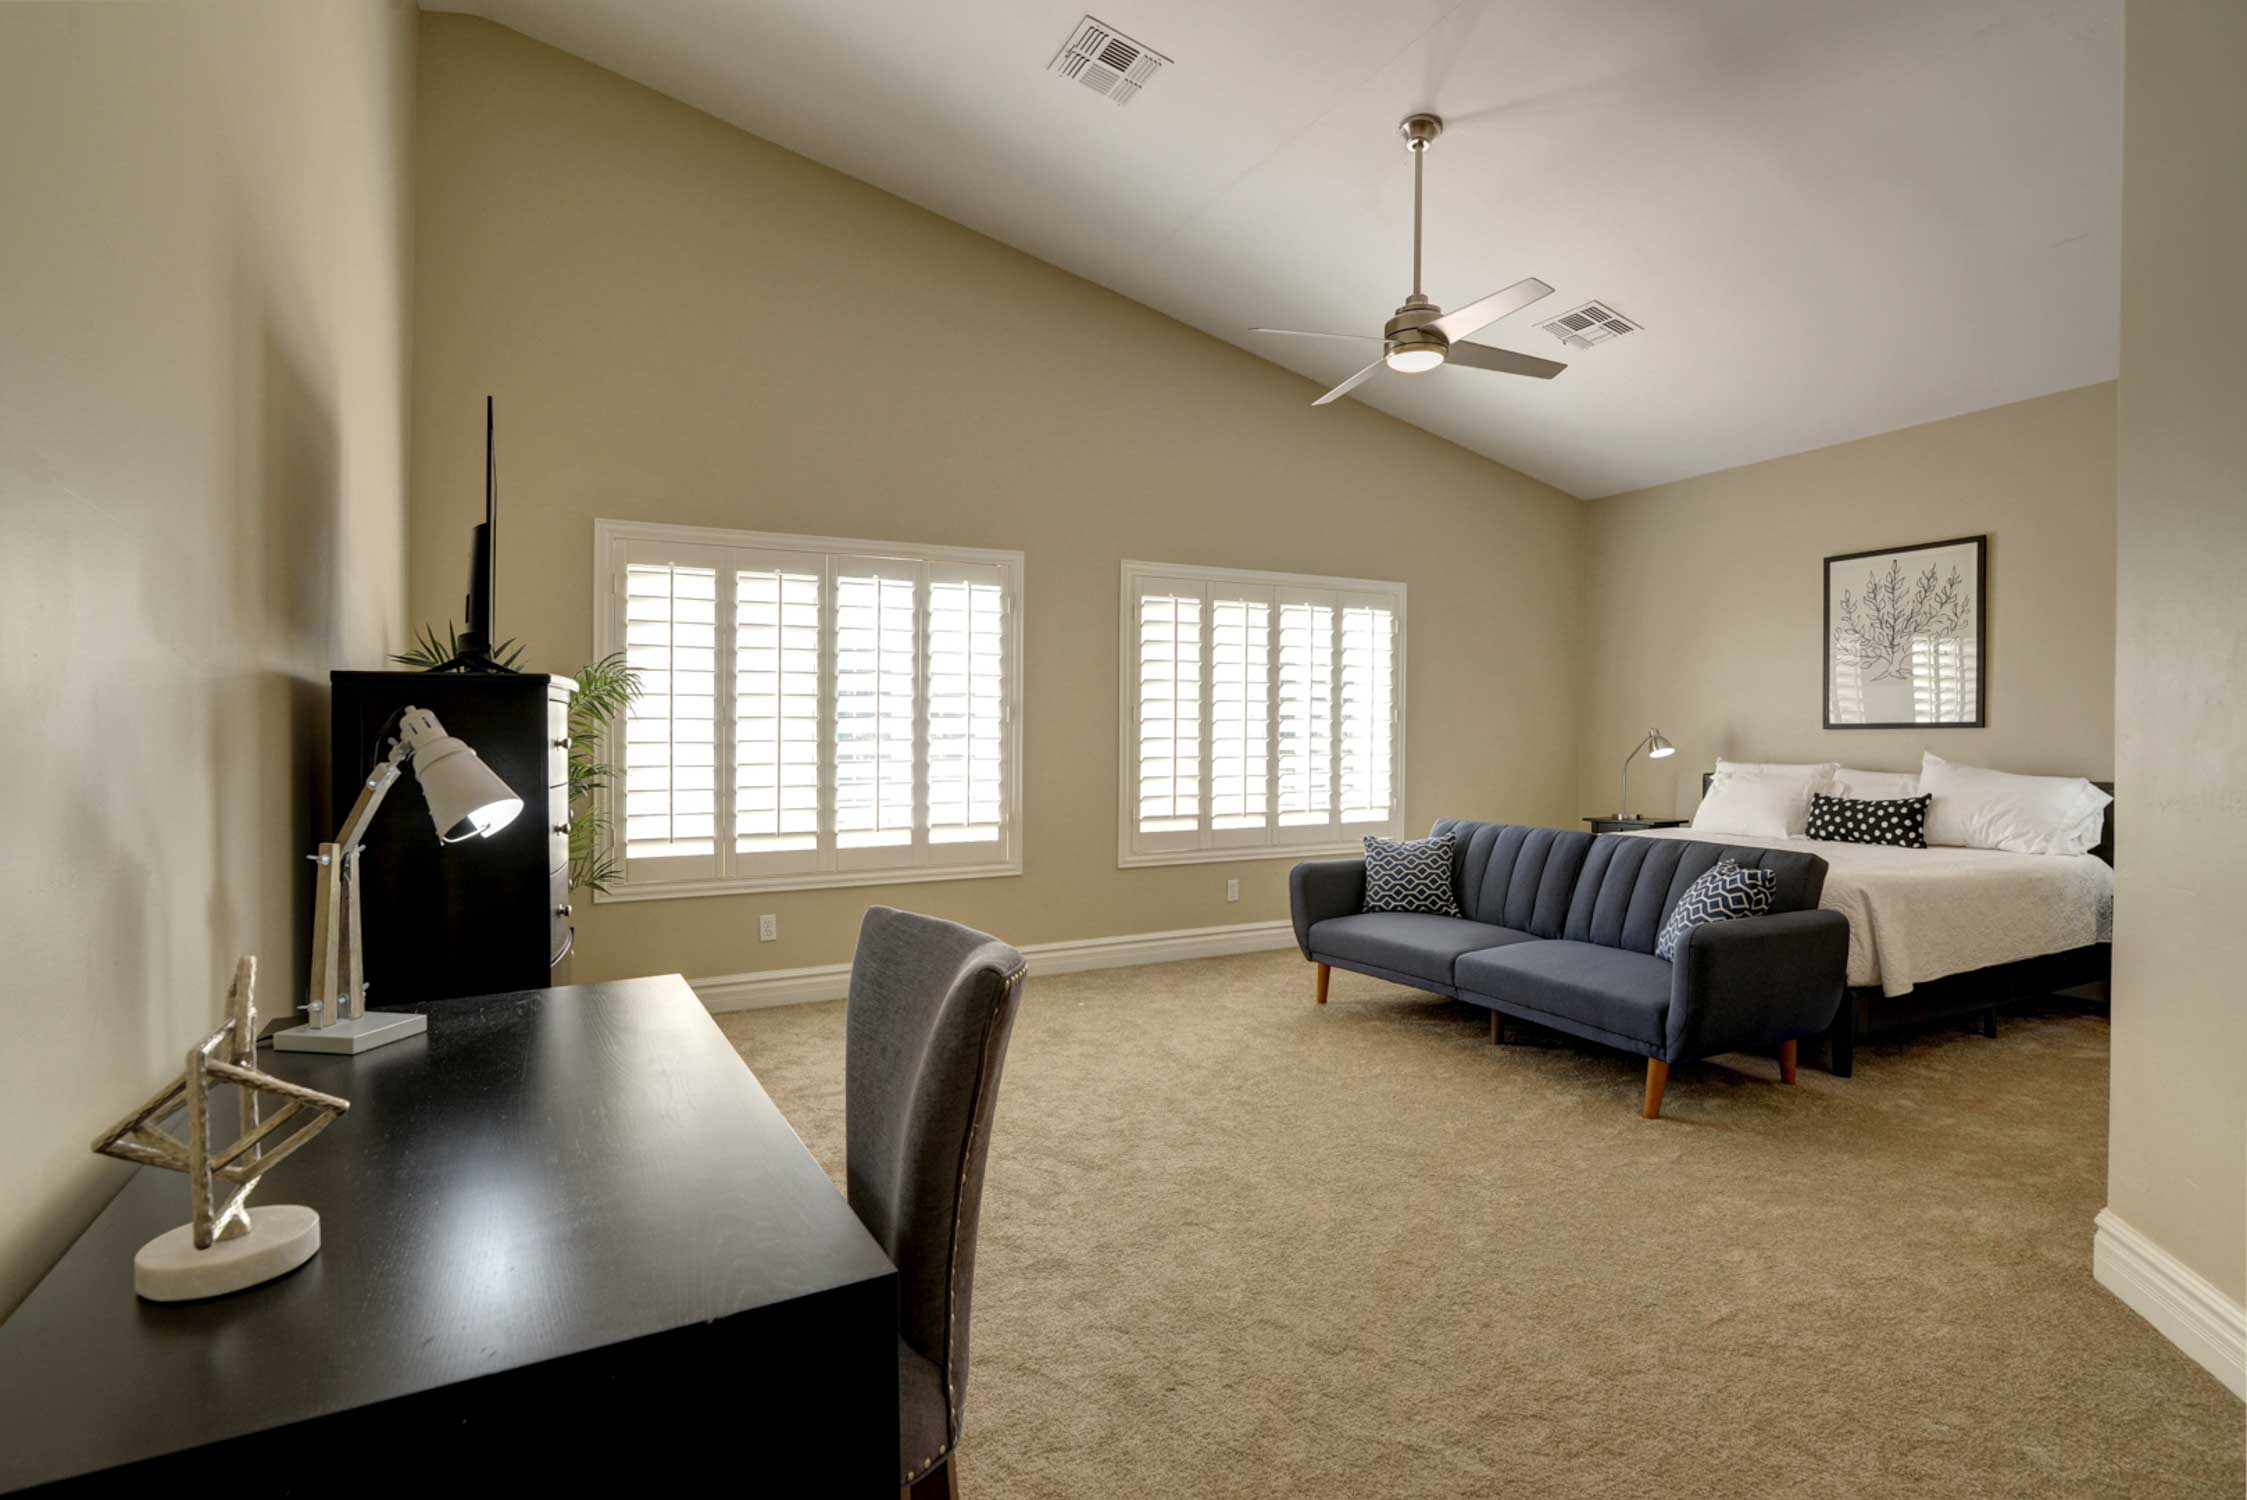 This bedroom includes a king bed & flat-screen TV with streaming capabilities.